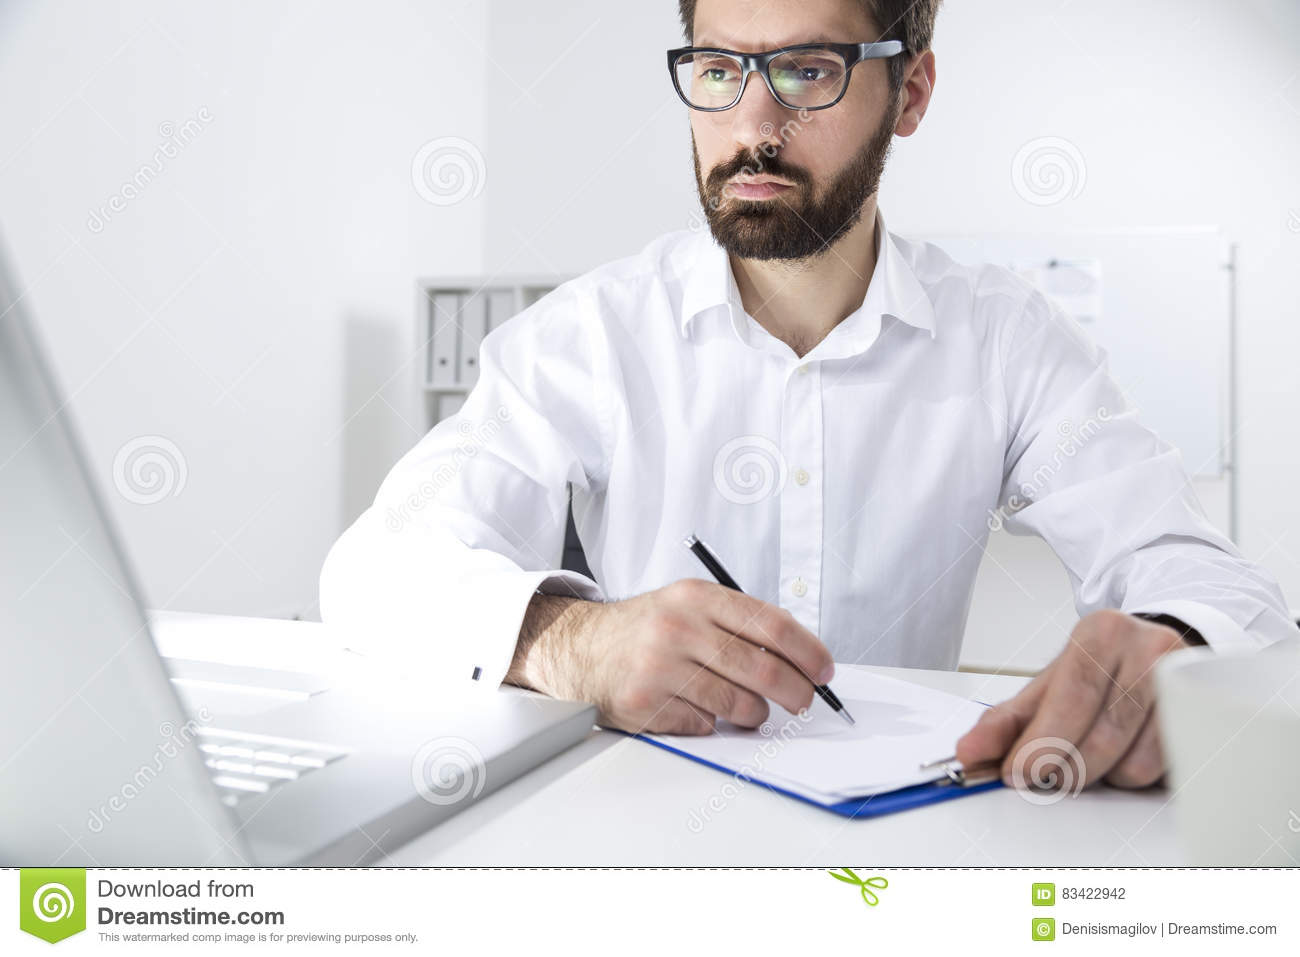 Portrait of a young bearded man taking notes